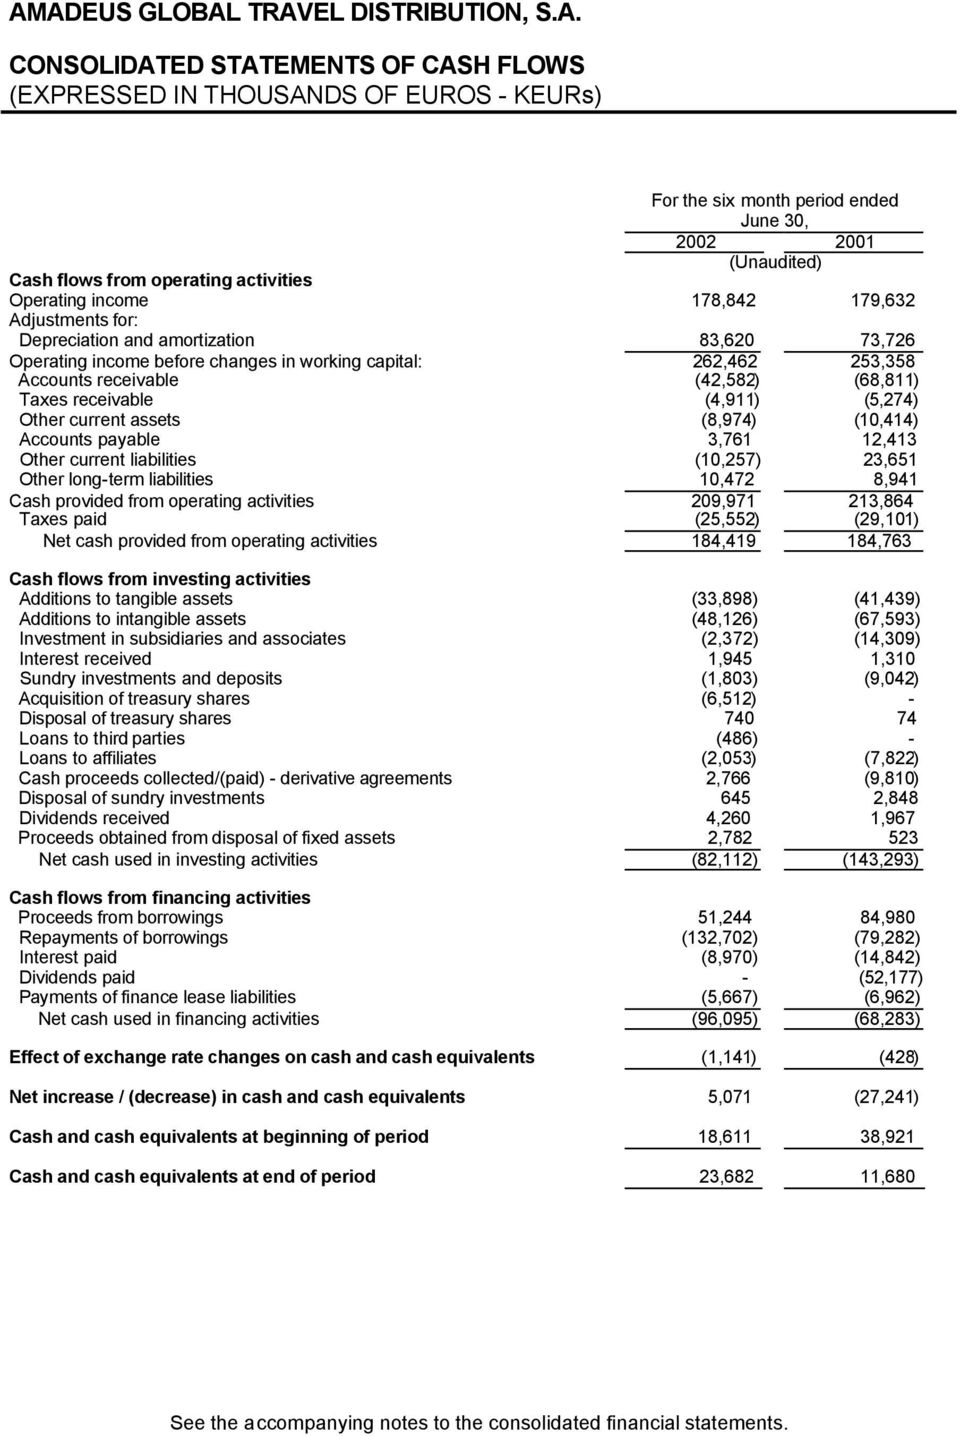 (4,911) (5,274) Other current assets (8,974) (10,414) Accounts payable 3,761 12,413 Other current liabilities (10,257) 23,651 Other long-term liabilities 10,472 15 8,941 Cash provided from operating